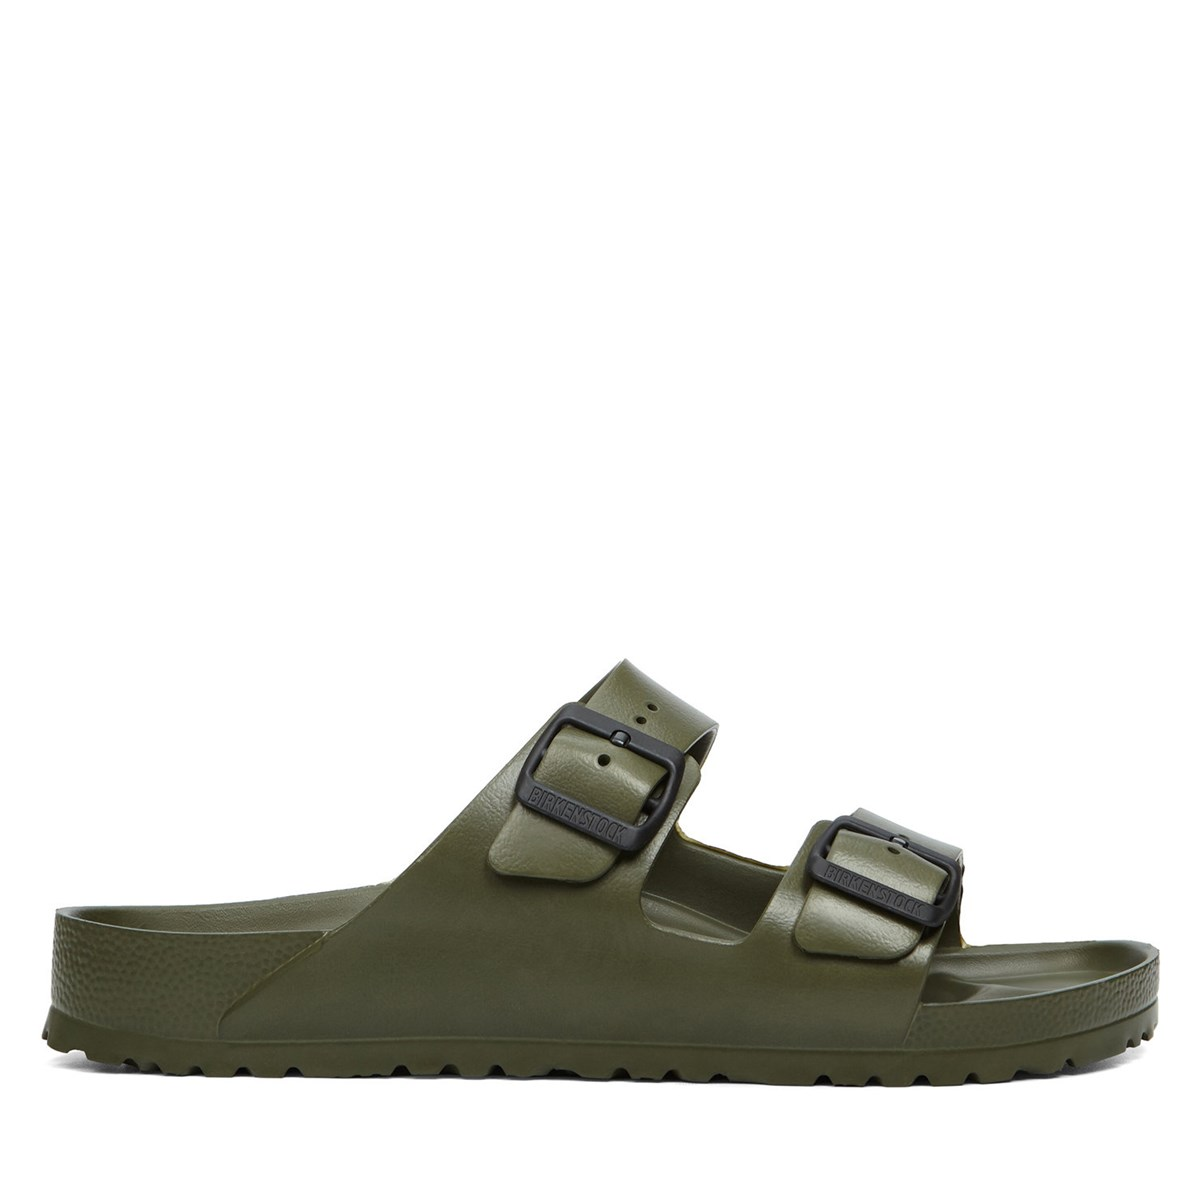 Men's EVA Arizona Khaki Sandal